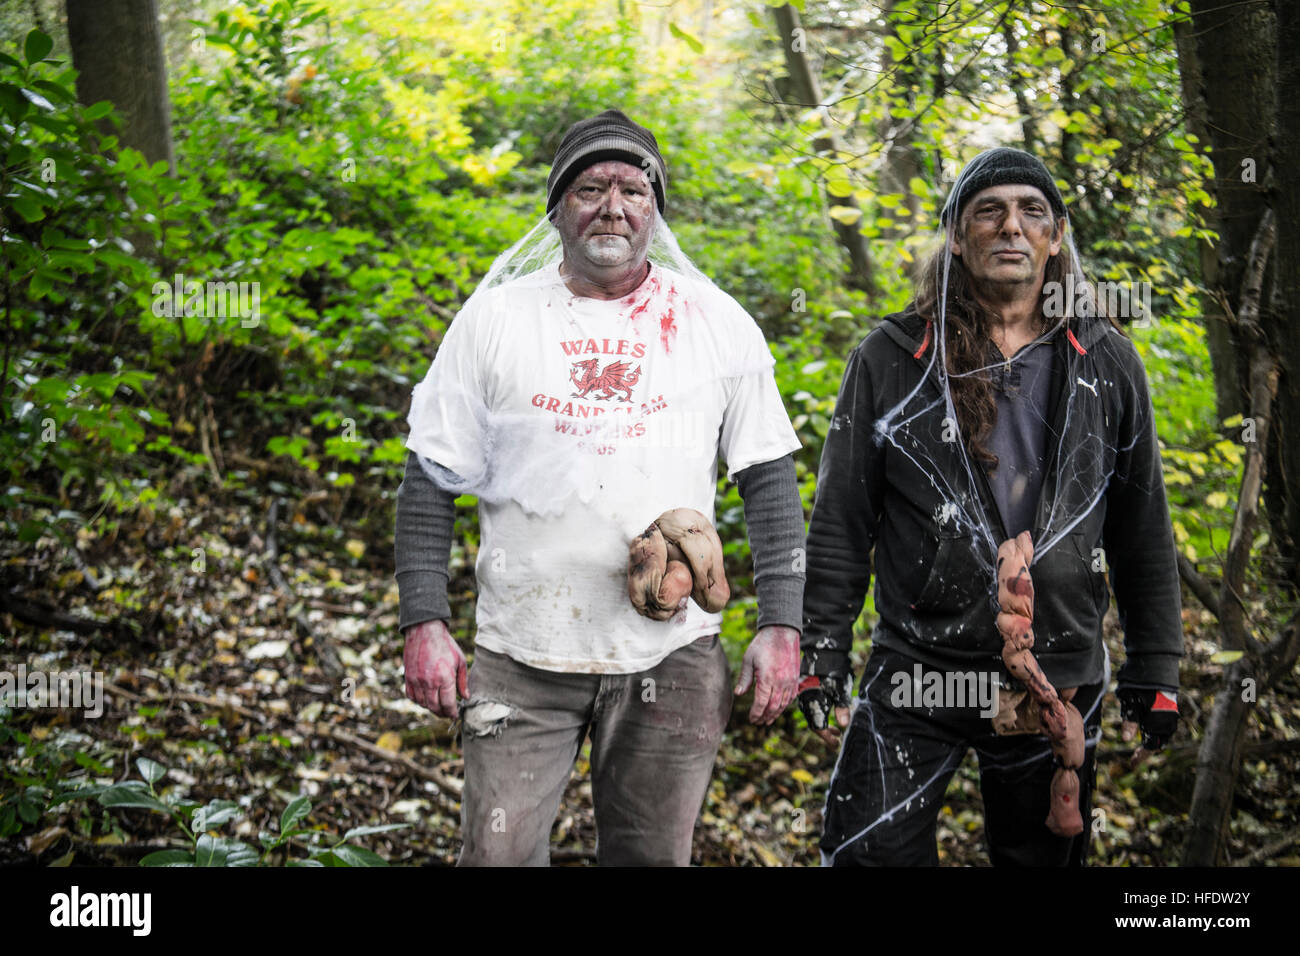 People dressed and made up as  zombies in the woods in a 'The Walking Dead Experience' Live Action Role - Stock Image